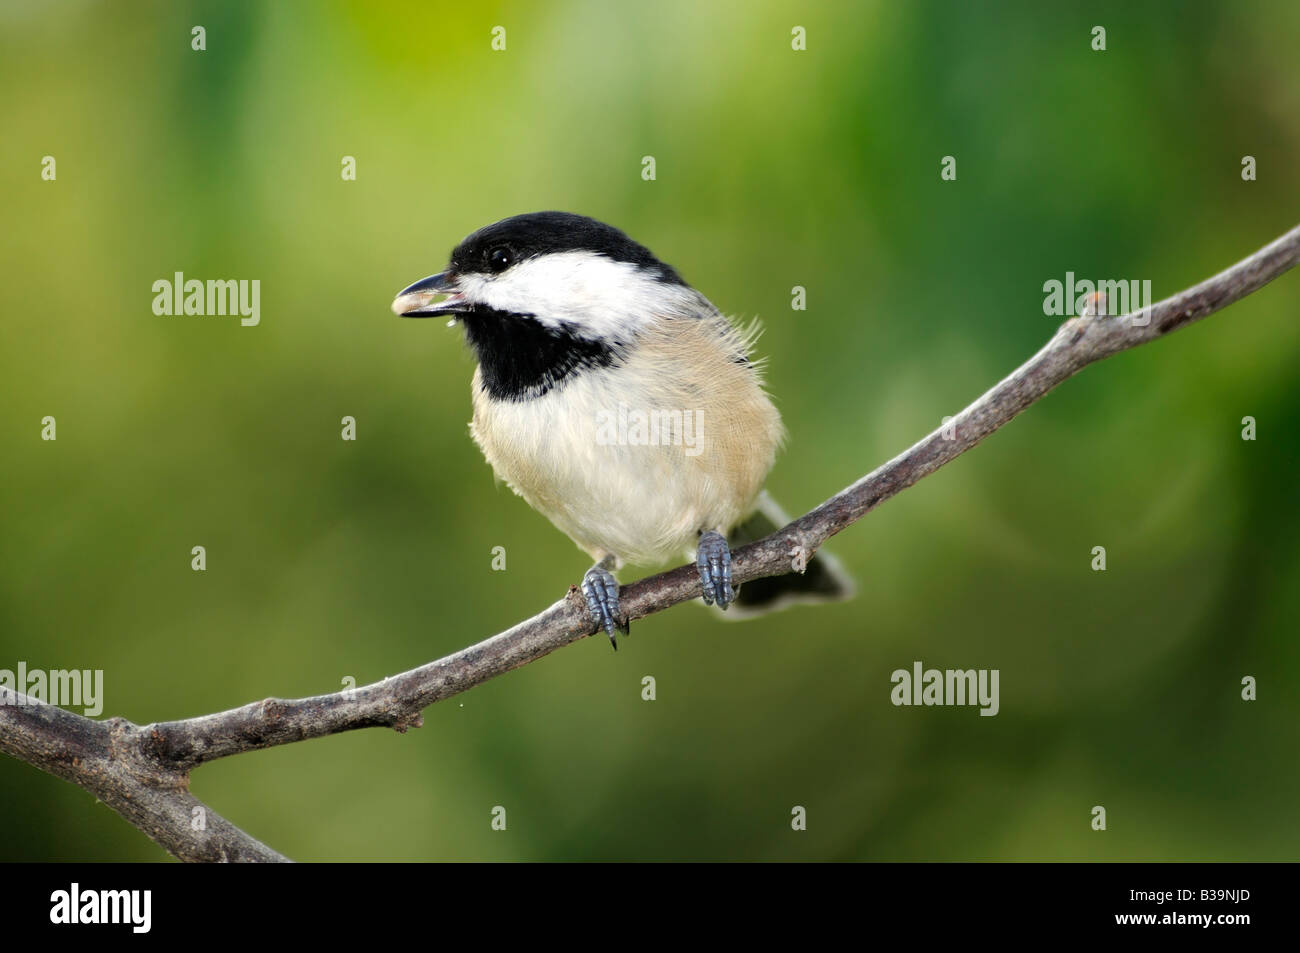 A Black capped Chickadee, Poecile atricapilla, perches on a branch. Oklahoma, USA - Stock Image